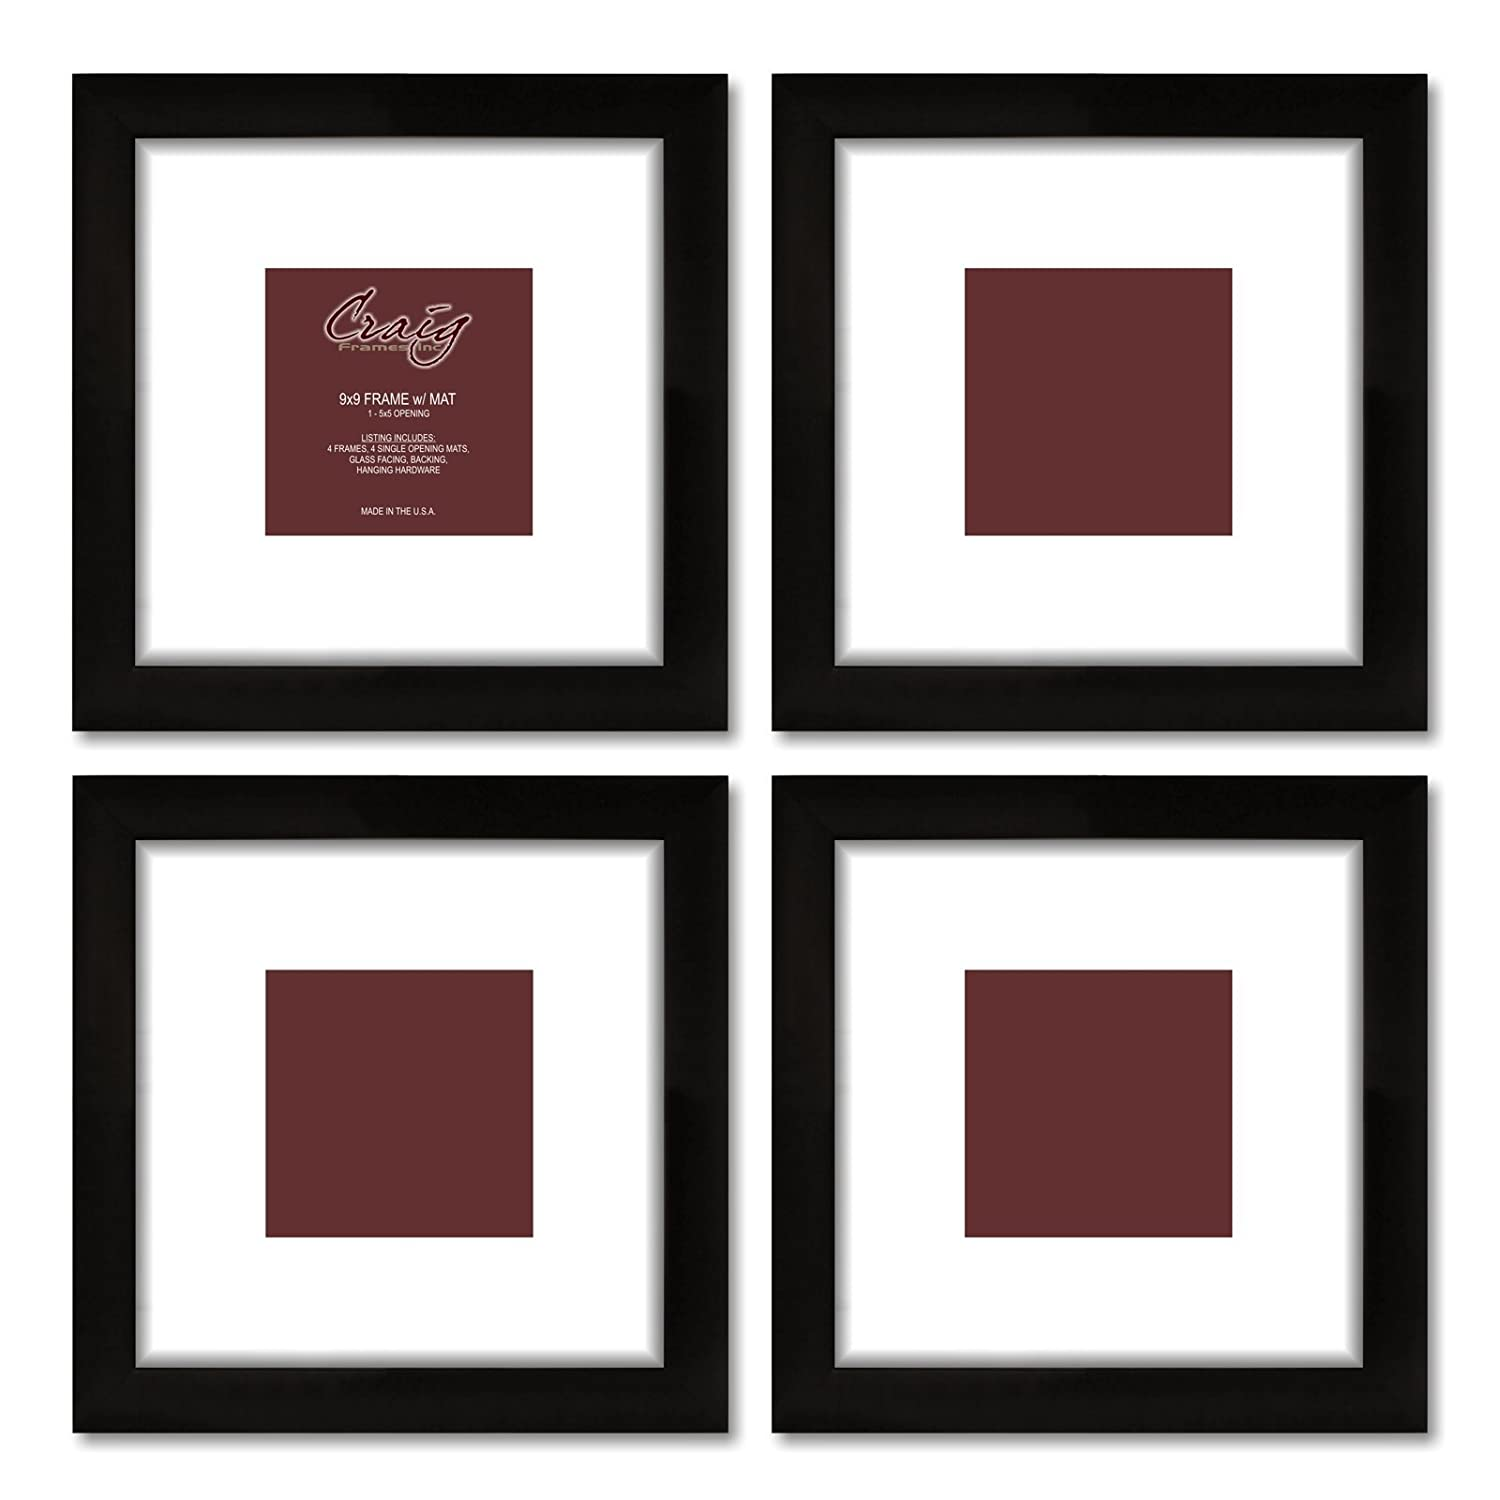 Amazon craig frames 1wb3bk 9 by 9 inch black picture frame amazon craig frames 1wb3bk 9 by 9 inch black picture frame white mat with 5 by 5 inch opening 4 piece set jeuxipadfo Image collections